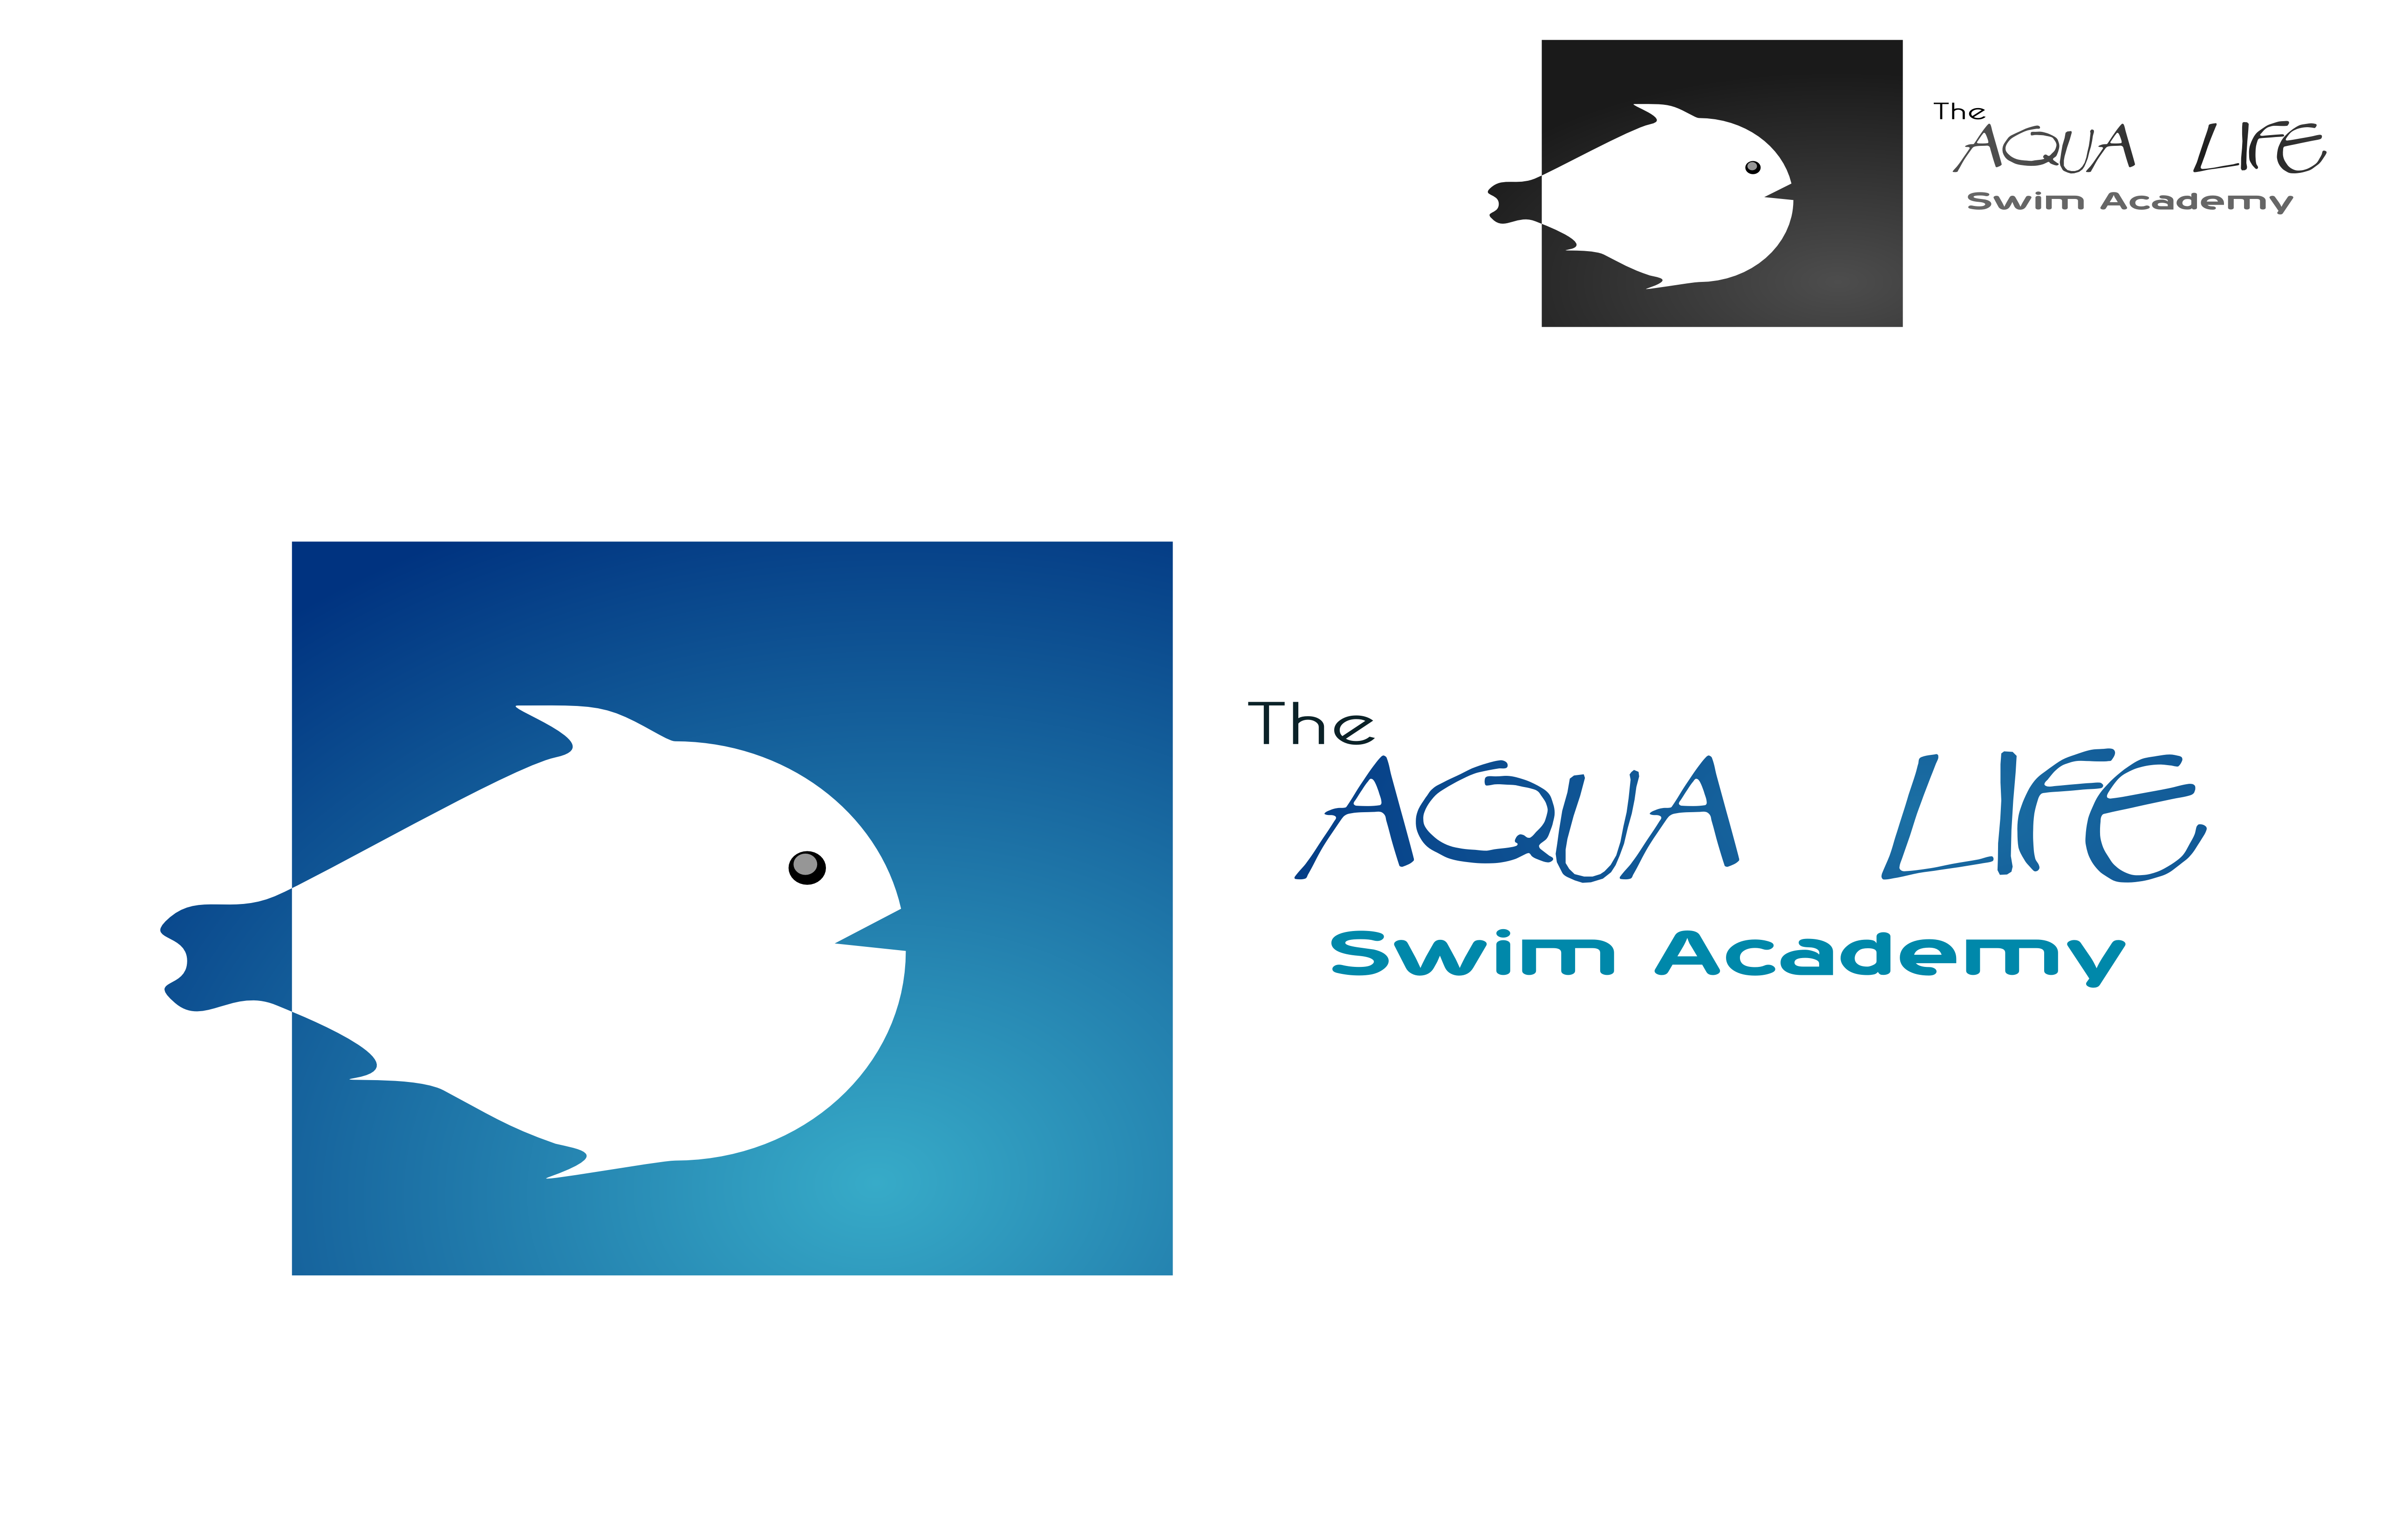 Logo Design by Arindam Khanda - Entry No. 85 in the Logo Design Contest Artistic Logo Design Wanted for The Aqua Life Swim Academy.